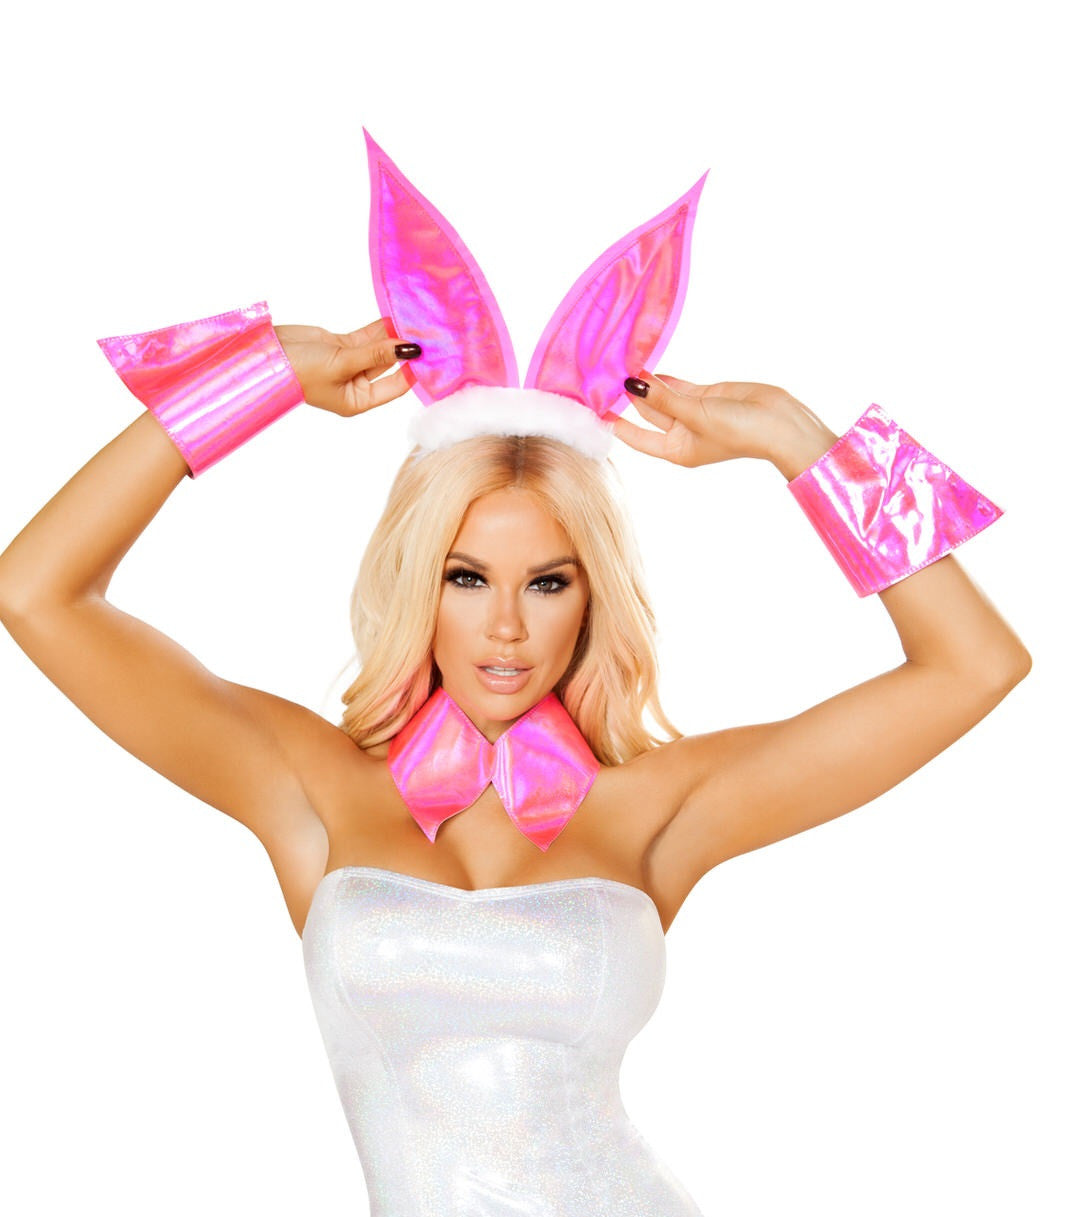 4829 - 3pc Bunny Accessories ${description} | Roma Costume and Roma Confidential wholesale manufacturer of Women Apparel bulk world wide wholesale and world wide drop ship services for Adult Halloween Costumes, Sexy and Elegant Lingerie, Rave Clothing, Club wear, and Christmas Costumes. Costumes, accessories, Roma Costume, Inc., Roma Costume, Roma Confidential, Wholesale clothing, drop ship, drop ship service, Wholesale Lingerie, Wholesale Adult Halloween Costumes, Rave Clothing, EDM Clothing, Festival Wear, Christmas Costumes, Clubwear, Club wear.